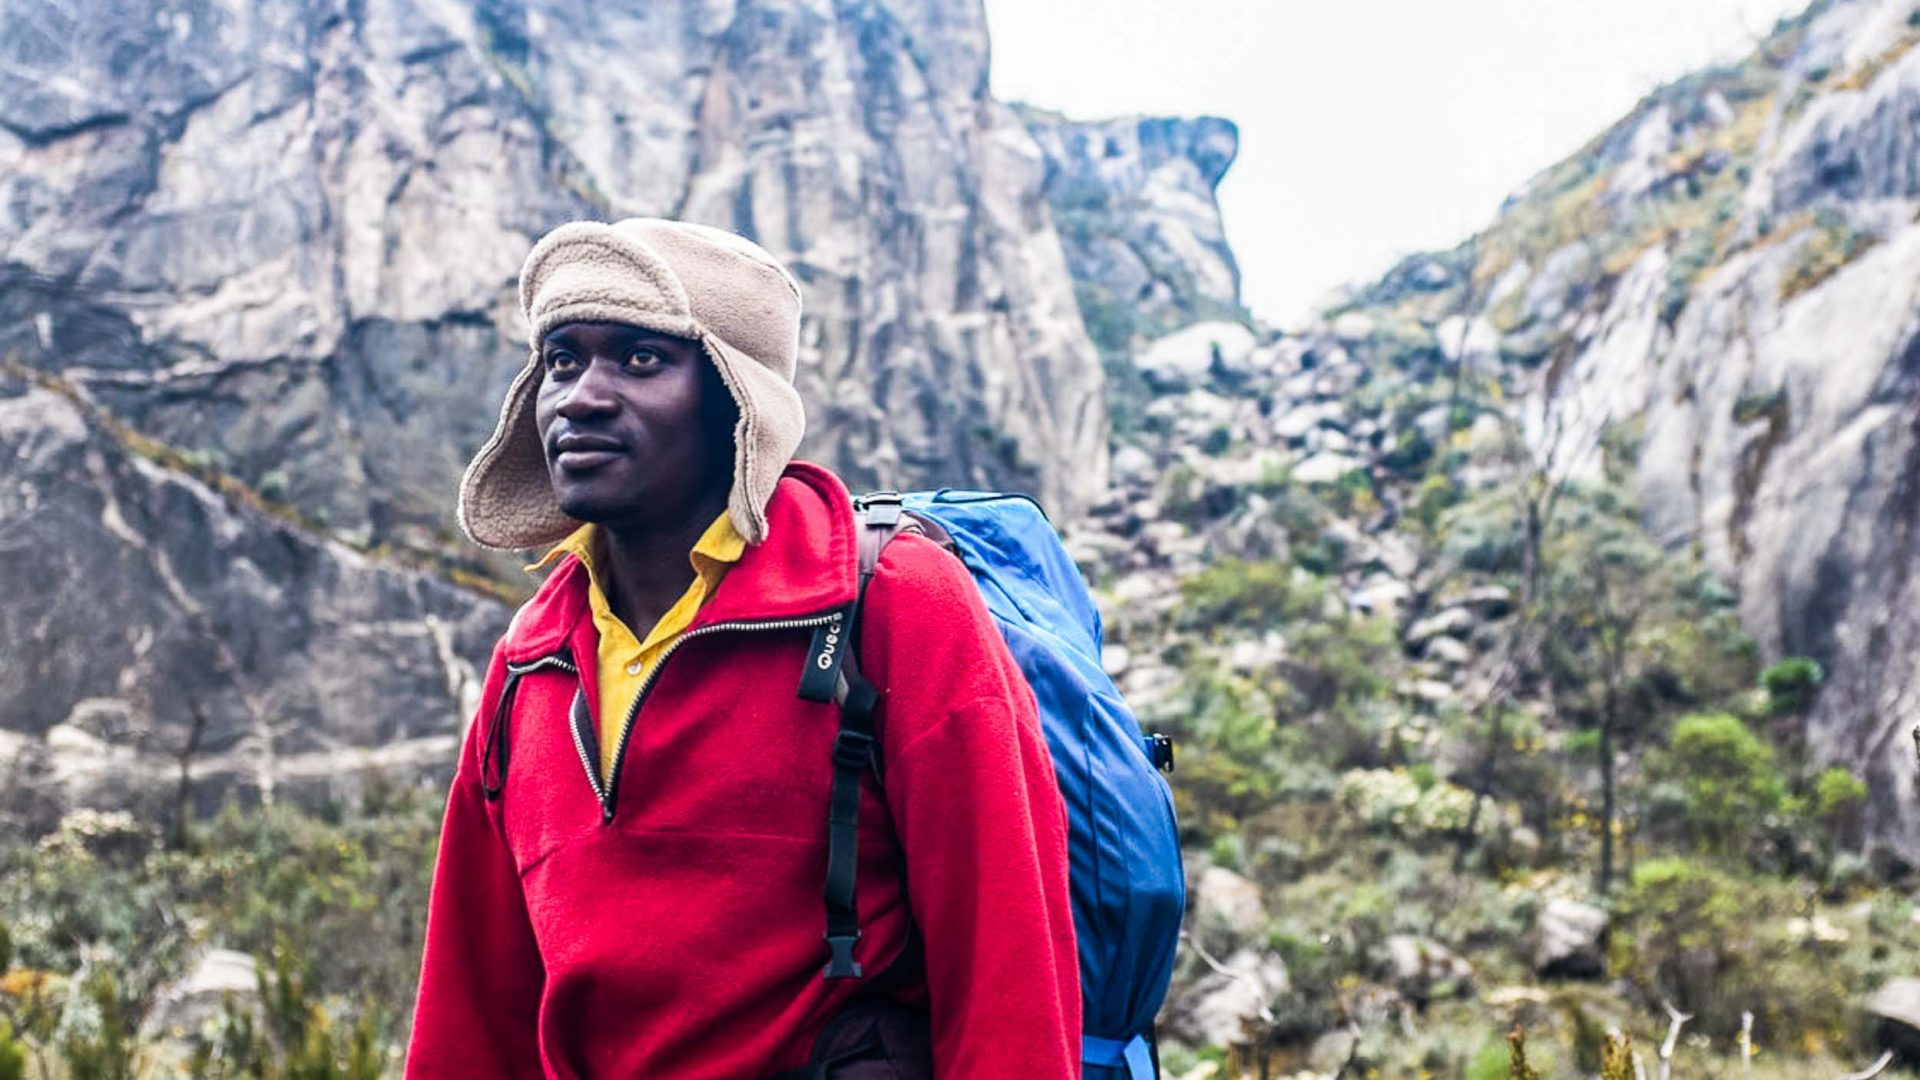 Guides Abel and Rasto made the hike in Rwenzori mountains seem easy.